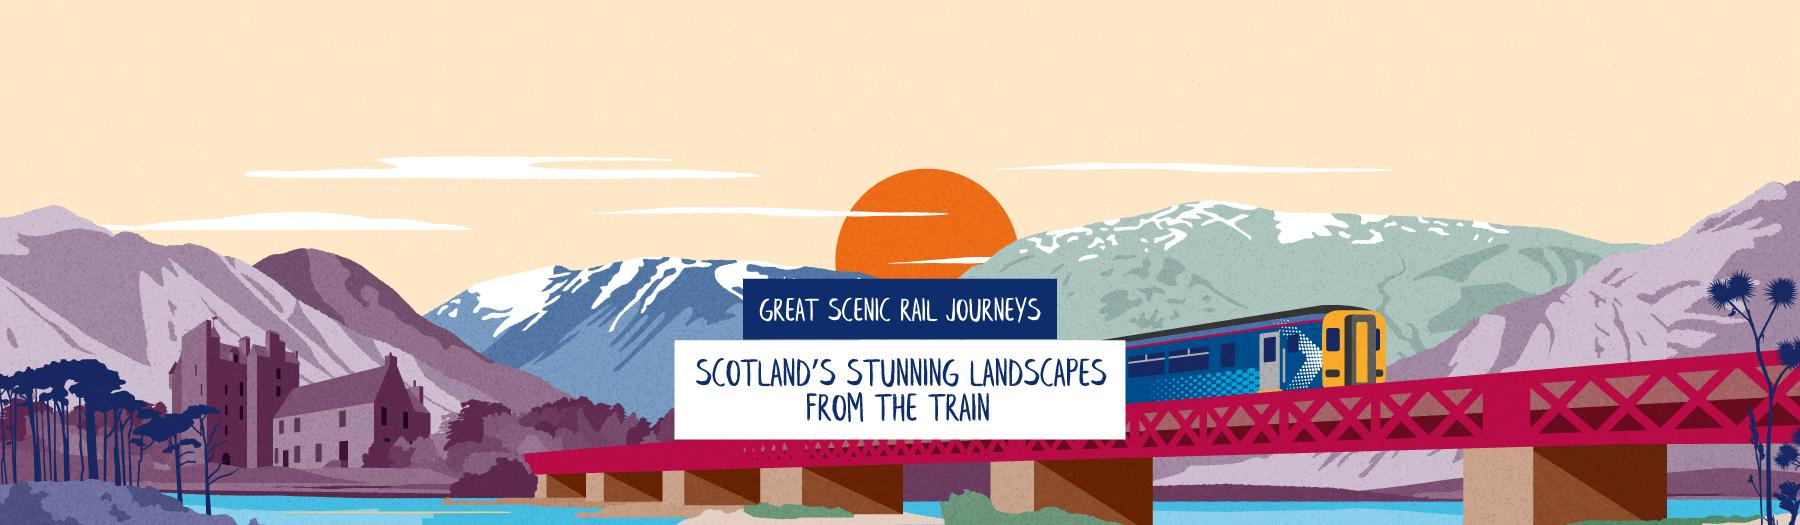 Great Scenic Rail Journeys - Scotland's stunning landscapes from train